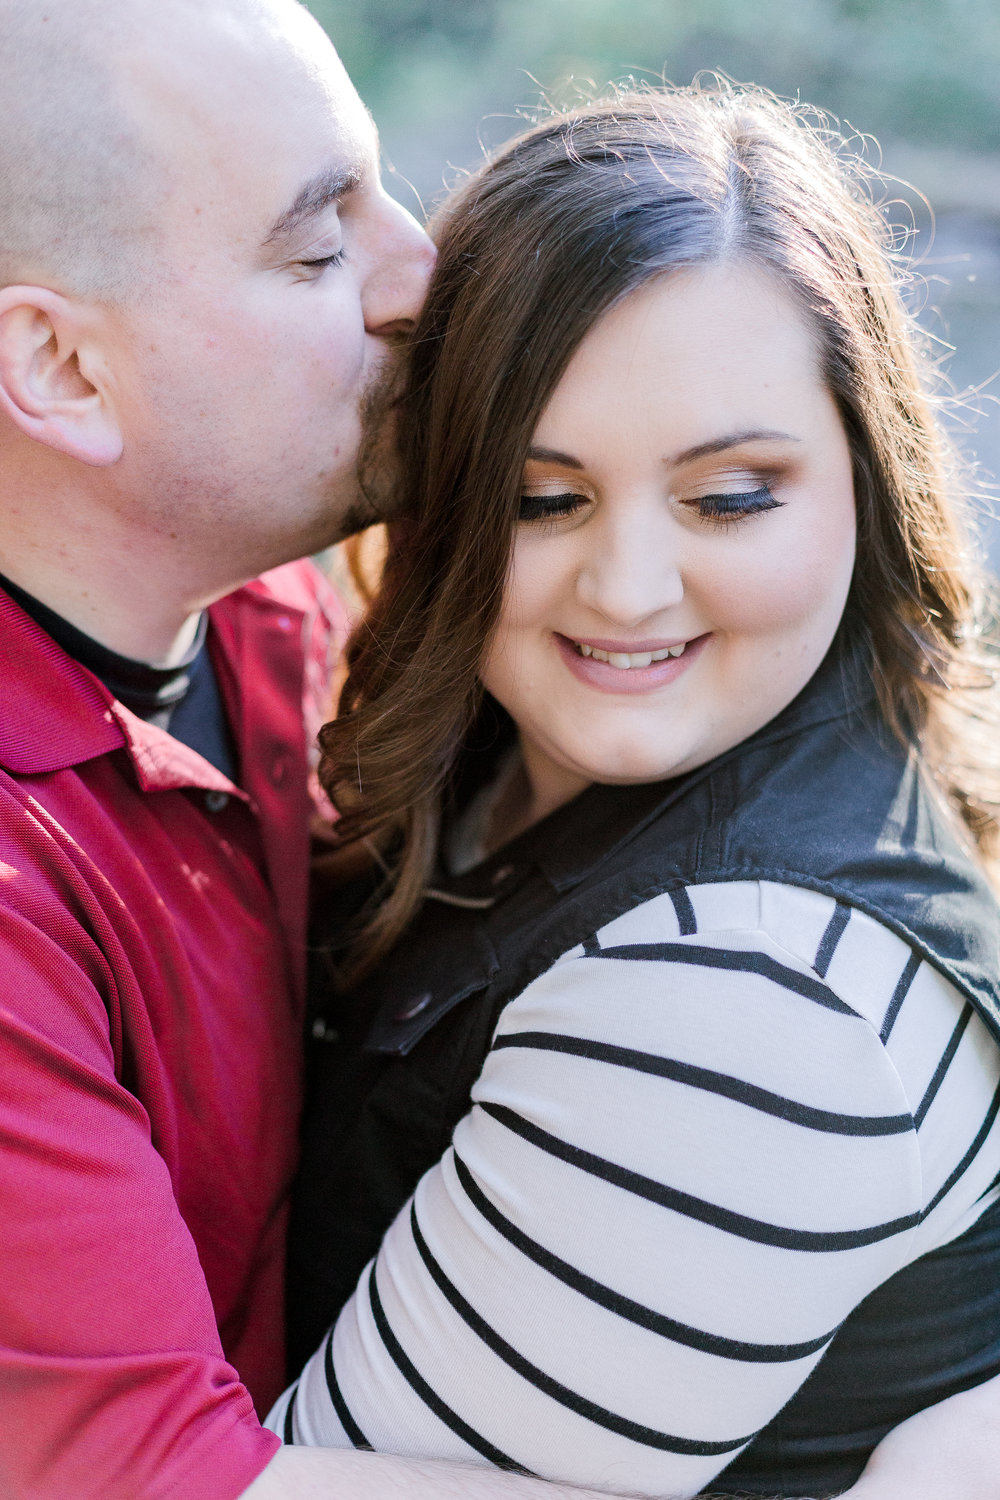 Jacobsburg State Park Nazareth Pennsylvania Woodsy Fall Engagement Session wedding and lifestyle photographer Lytle Photo Co (20 of 64).jpg